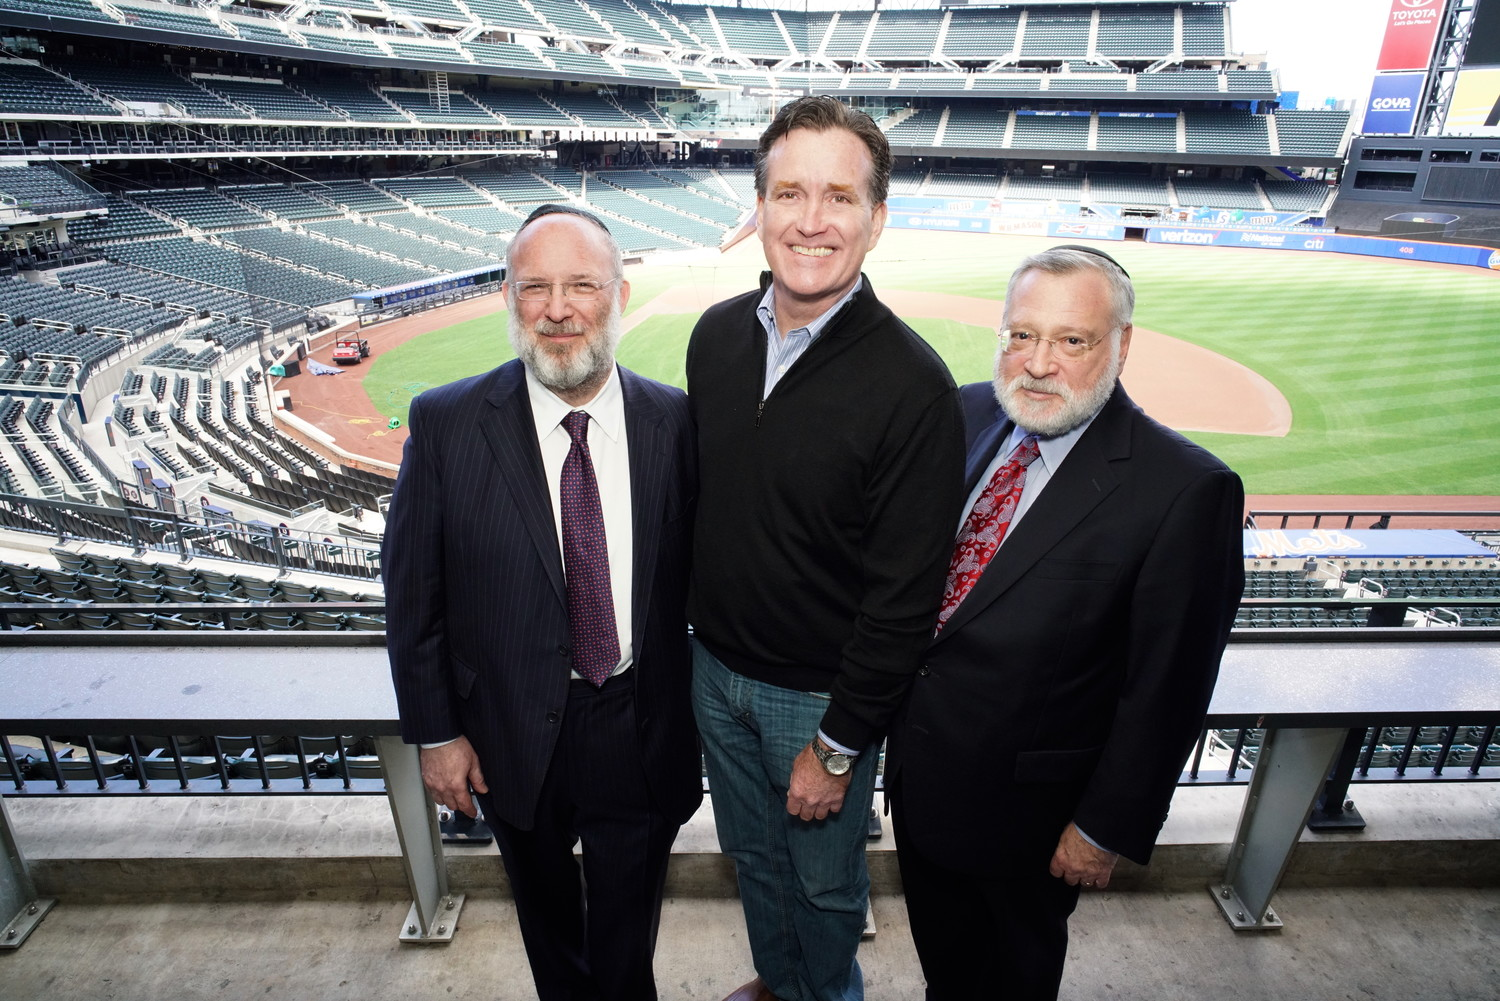 At CitiField: From left: OU President Moishe Bane, state Sen. Majority Leader John Flanagan, and OU Executive Vice President Allen Fagin.